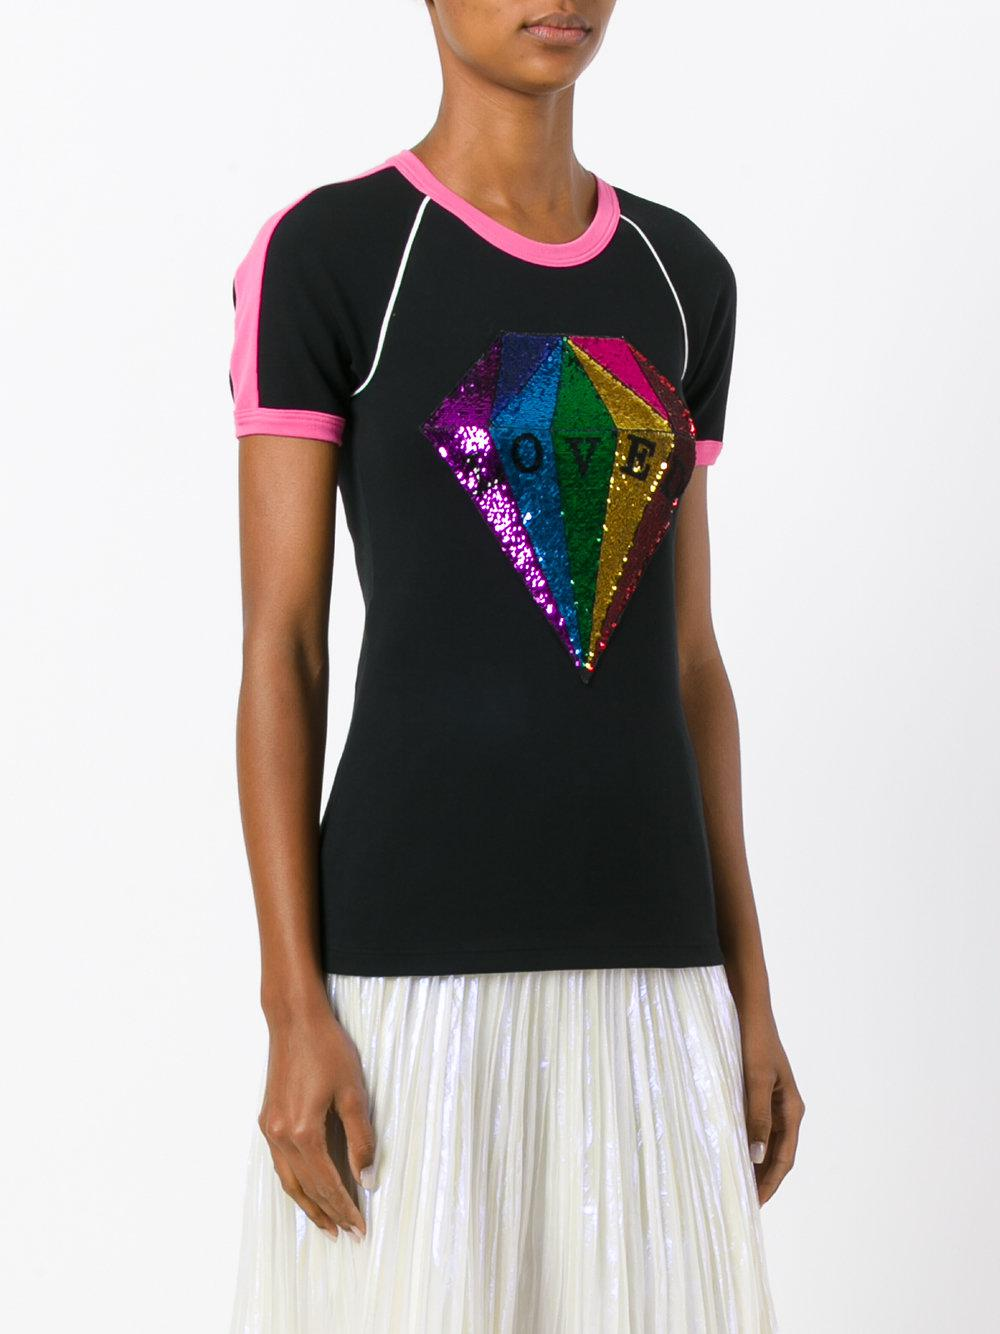 567f85a72489 Gucci Loved Sequin Diamond T-shirt in Black - Lyst